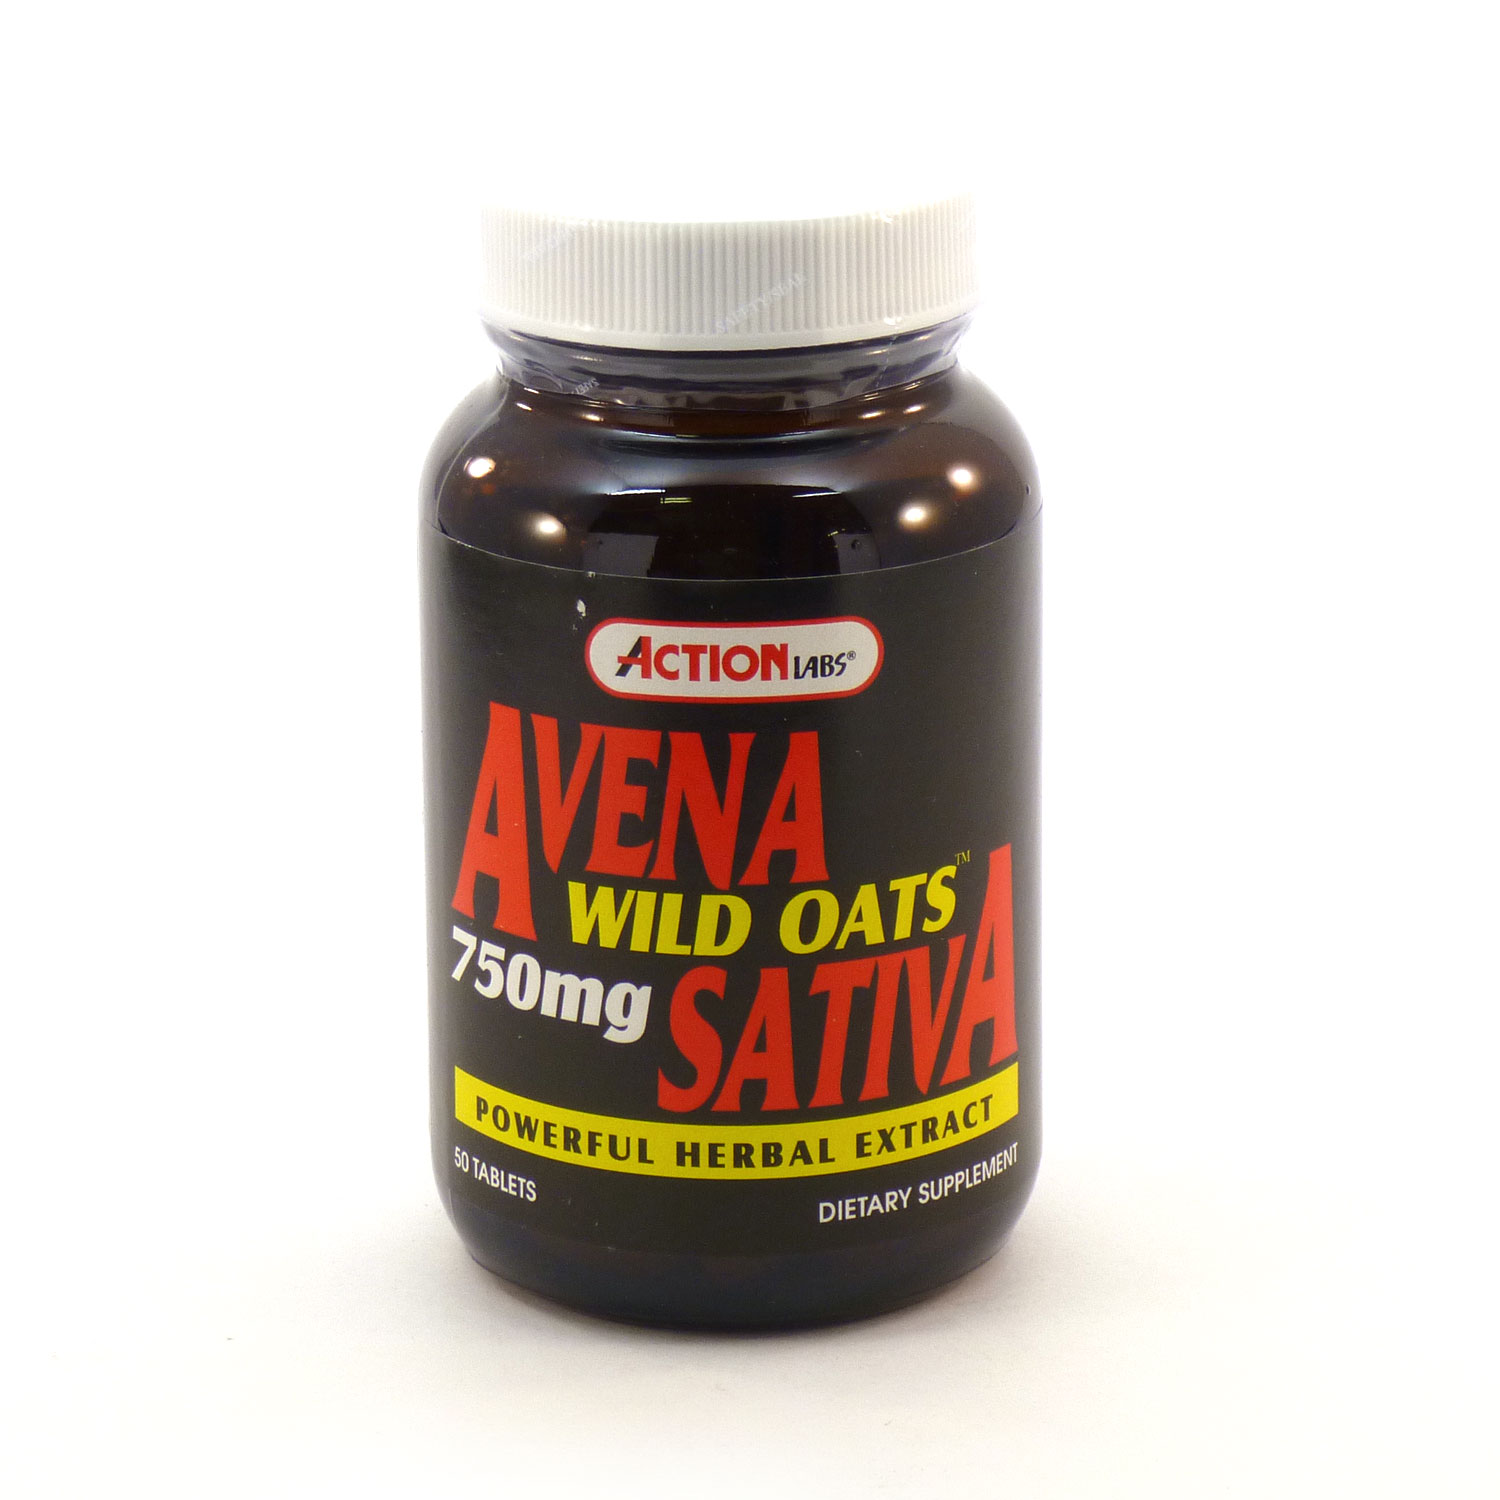 Image of Avena Sativa Wild Oats 750 mg By Action Labs - 50 Tablets